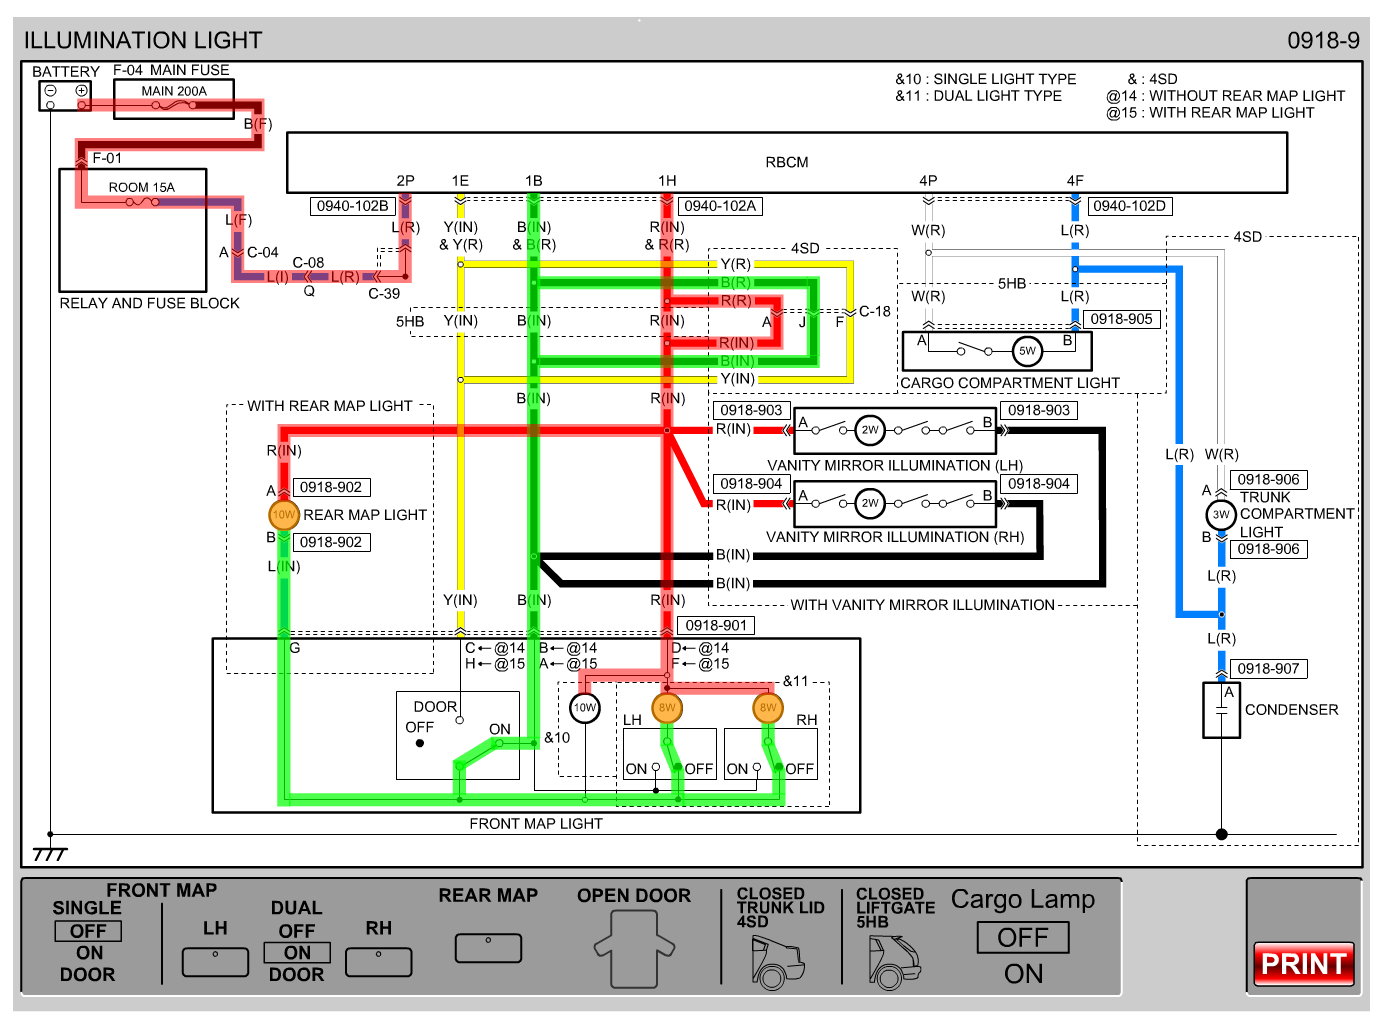 Wiring Diagram Mazda 3 2005 | Wiring Diagram - 3 Wire Trailer Wiring Diagram